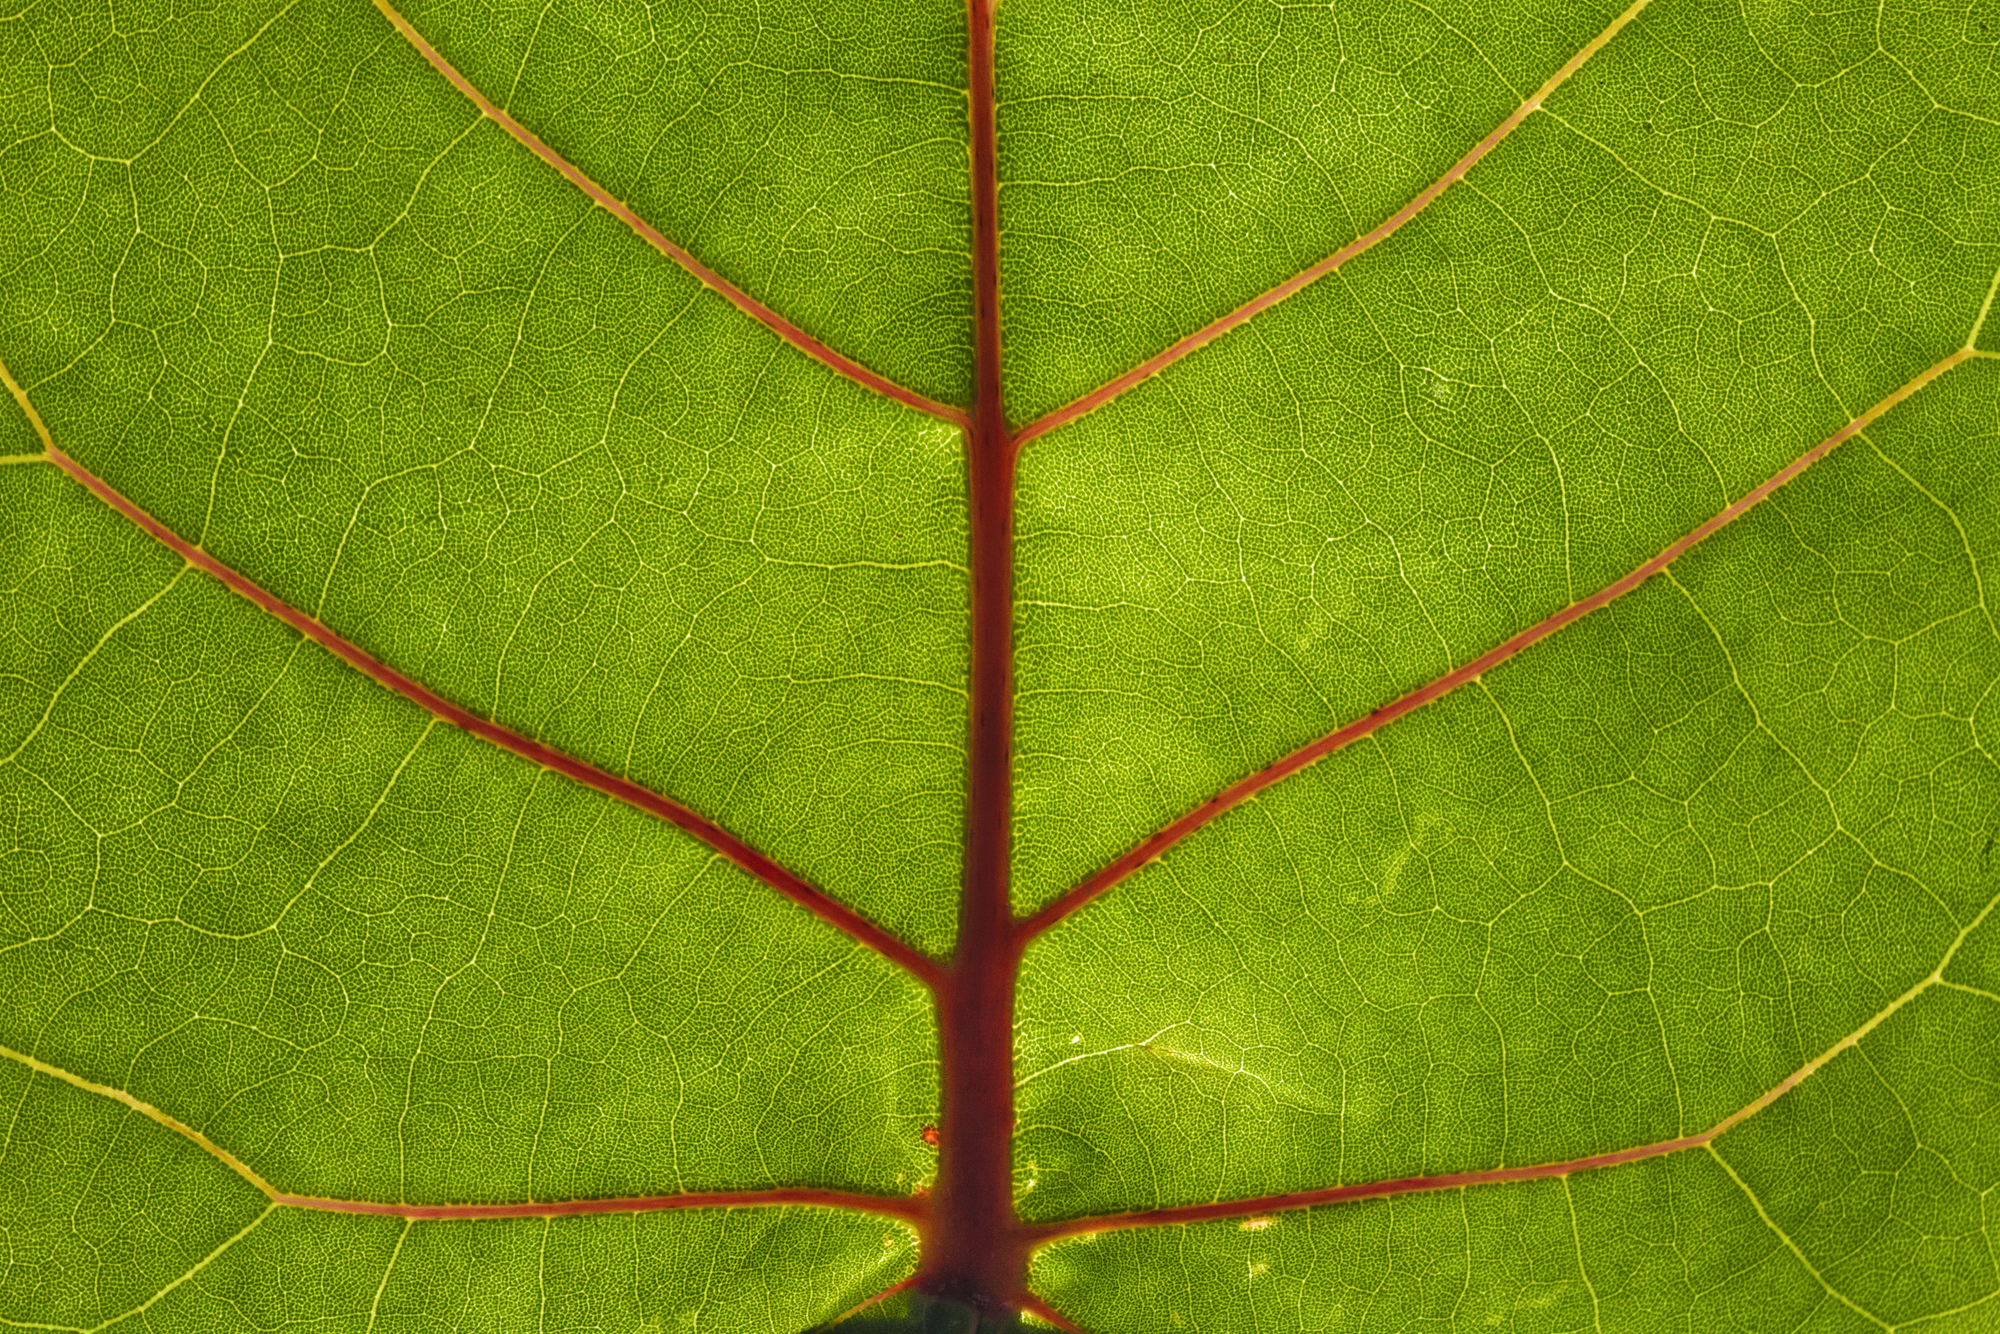 Life is a fine art photograph of a leaf with glorious detail and intricacy. Translucent lines contrast deep red veins on a green surface as the light of the sun illuminates the leaf. Green, Red, Yellow are dominate in this photograph. The ever smaller and more intricate lines and textures draw the viewer in.